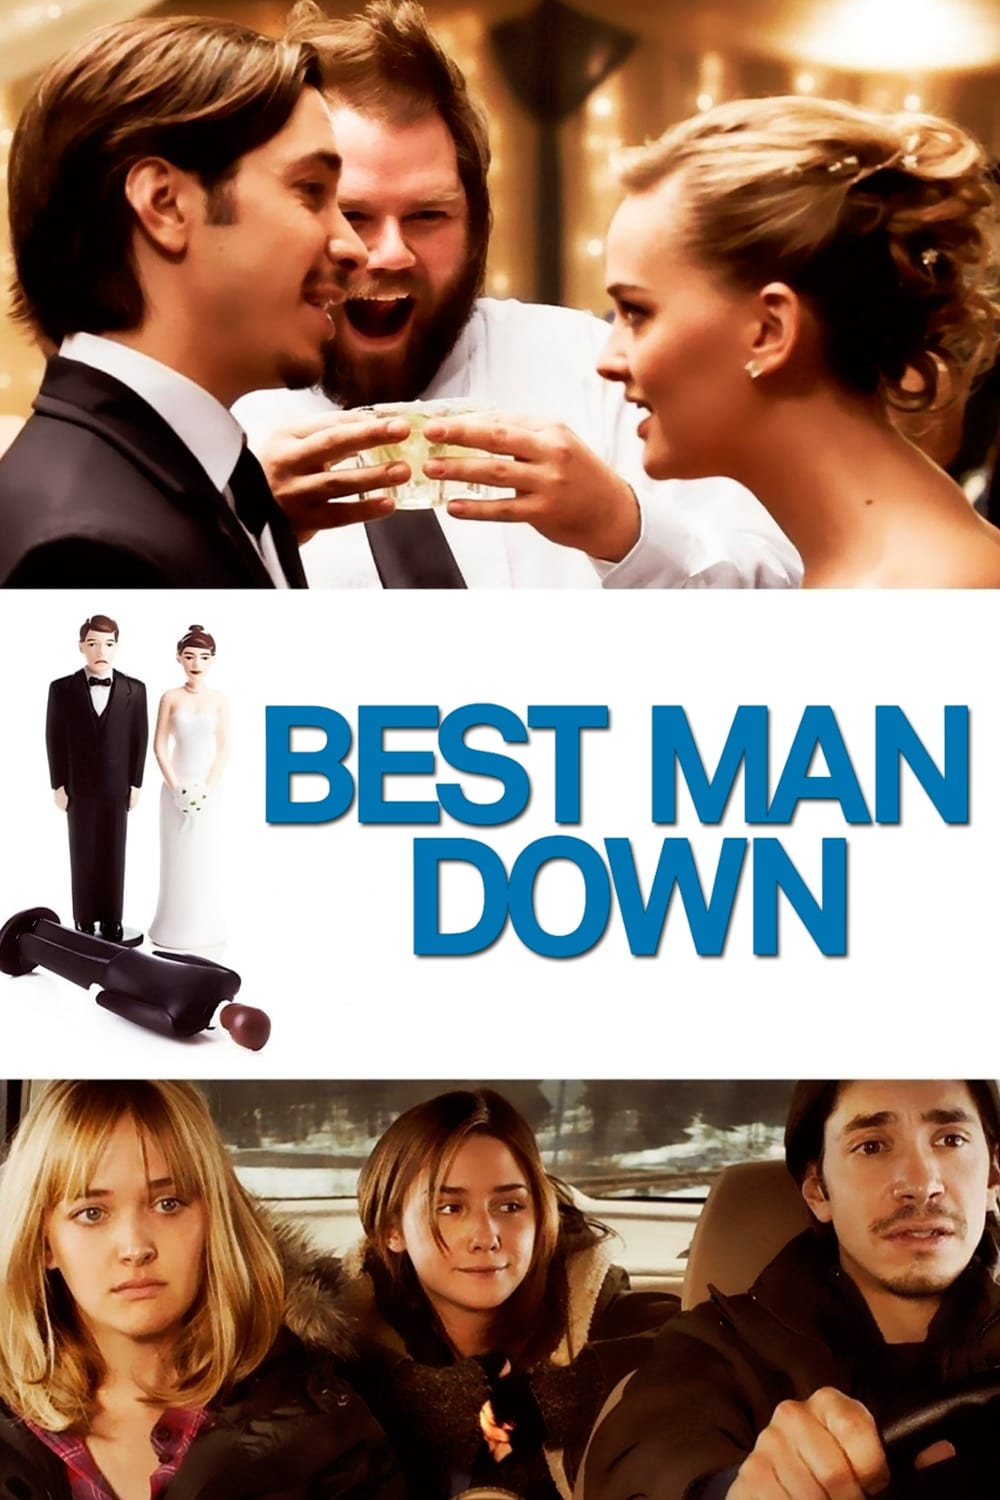 Best Man Down on FREECABLE TV